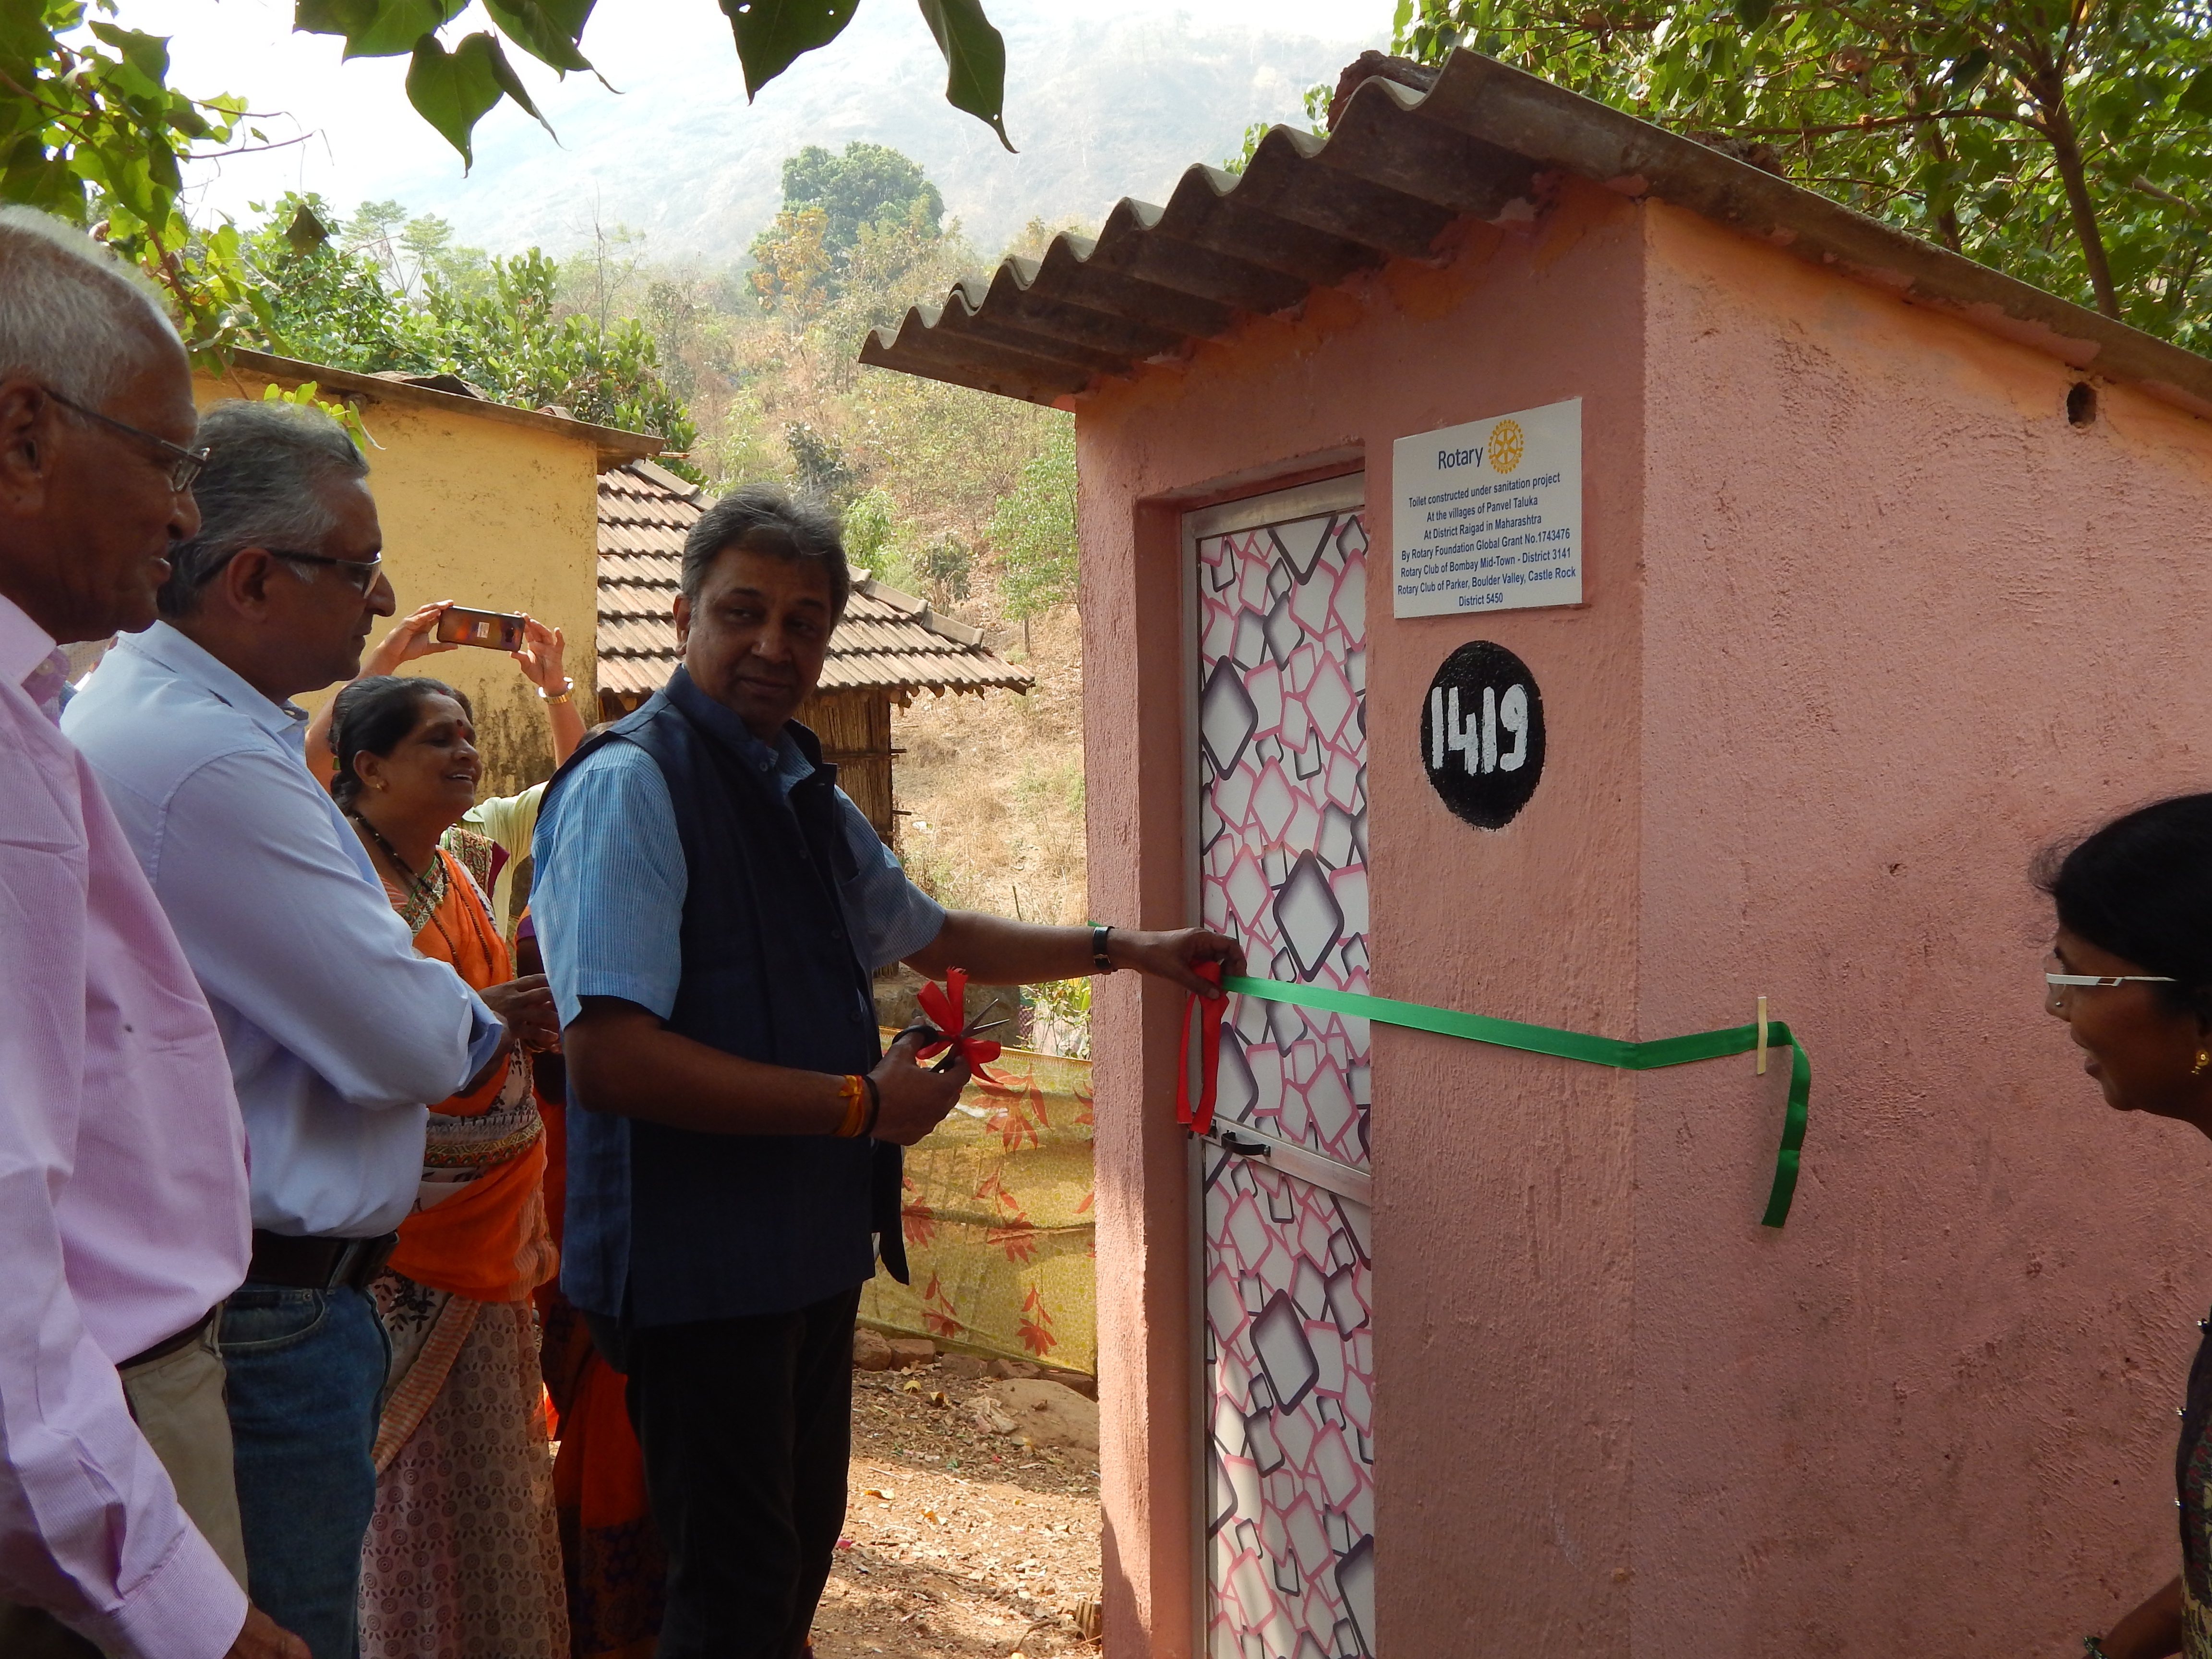 DG Prafull Sharma inaugurated the Rotary Club of Bombay Mid-Town's project